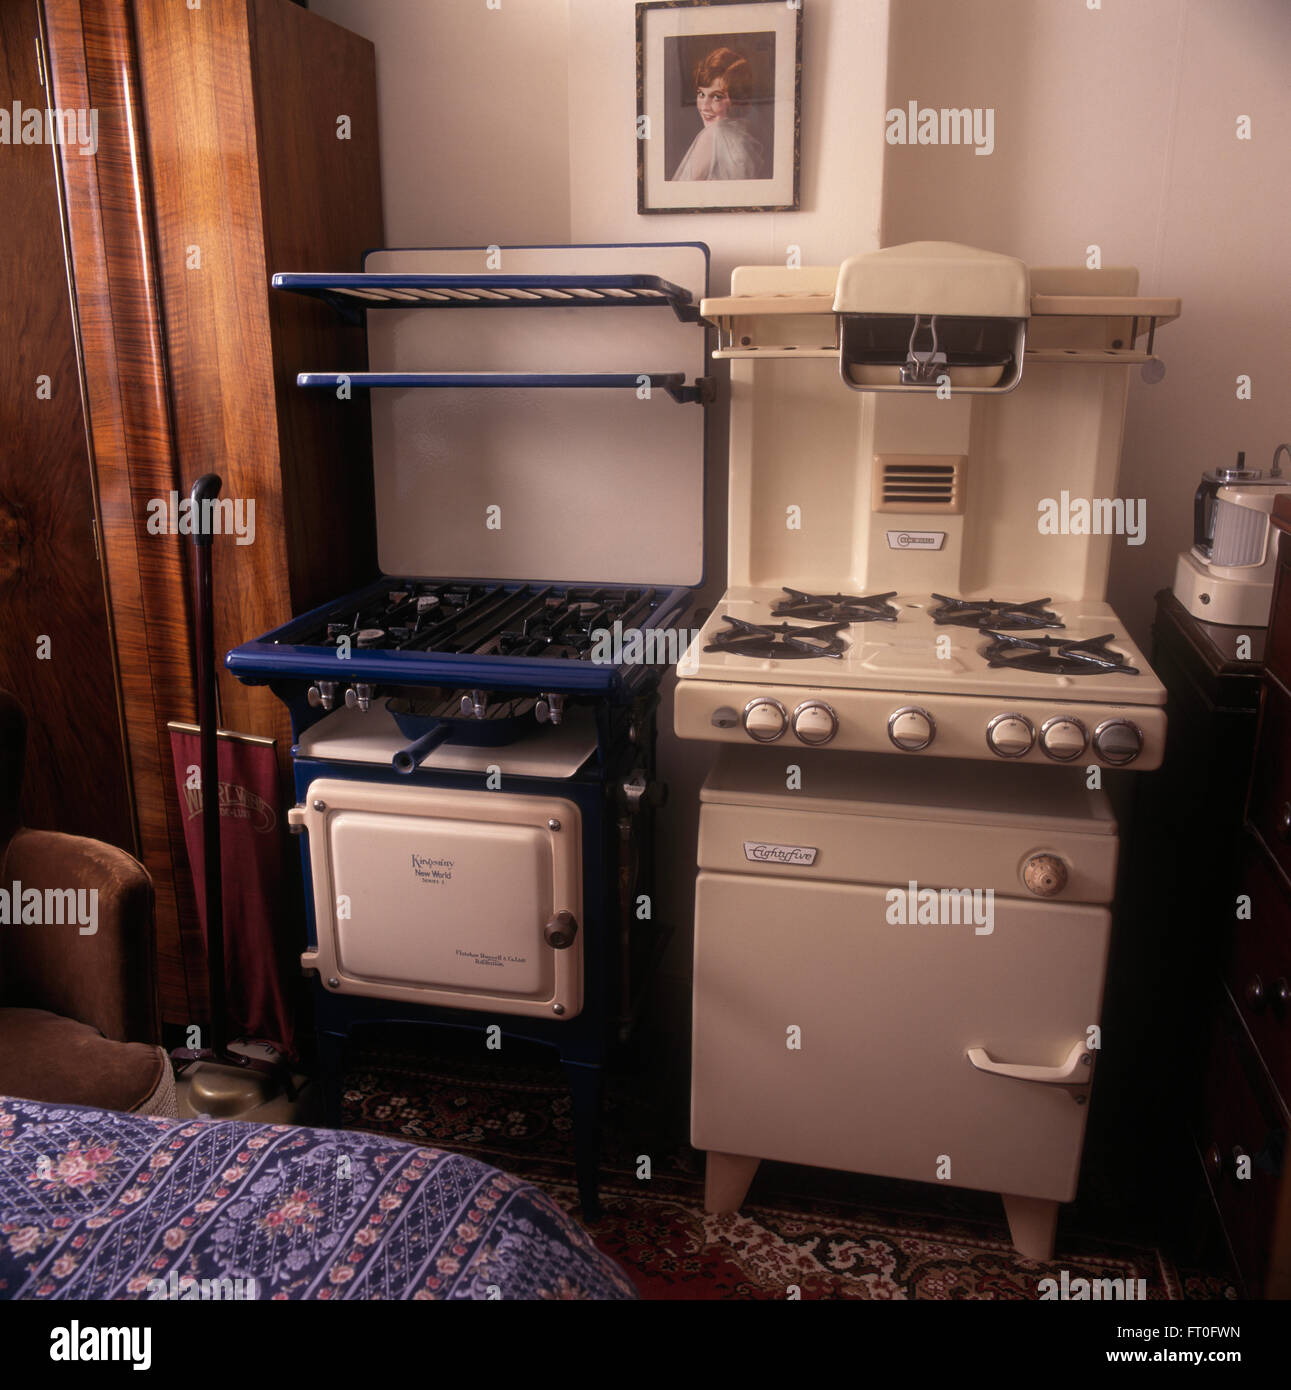 Collection of vintage gas cookers in fifties bedroom - Stock Image